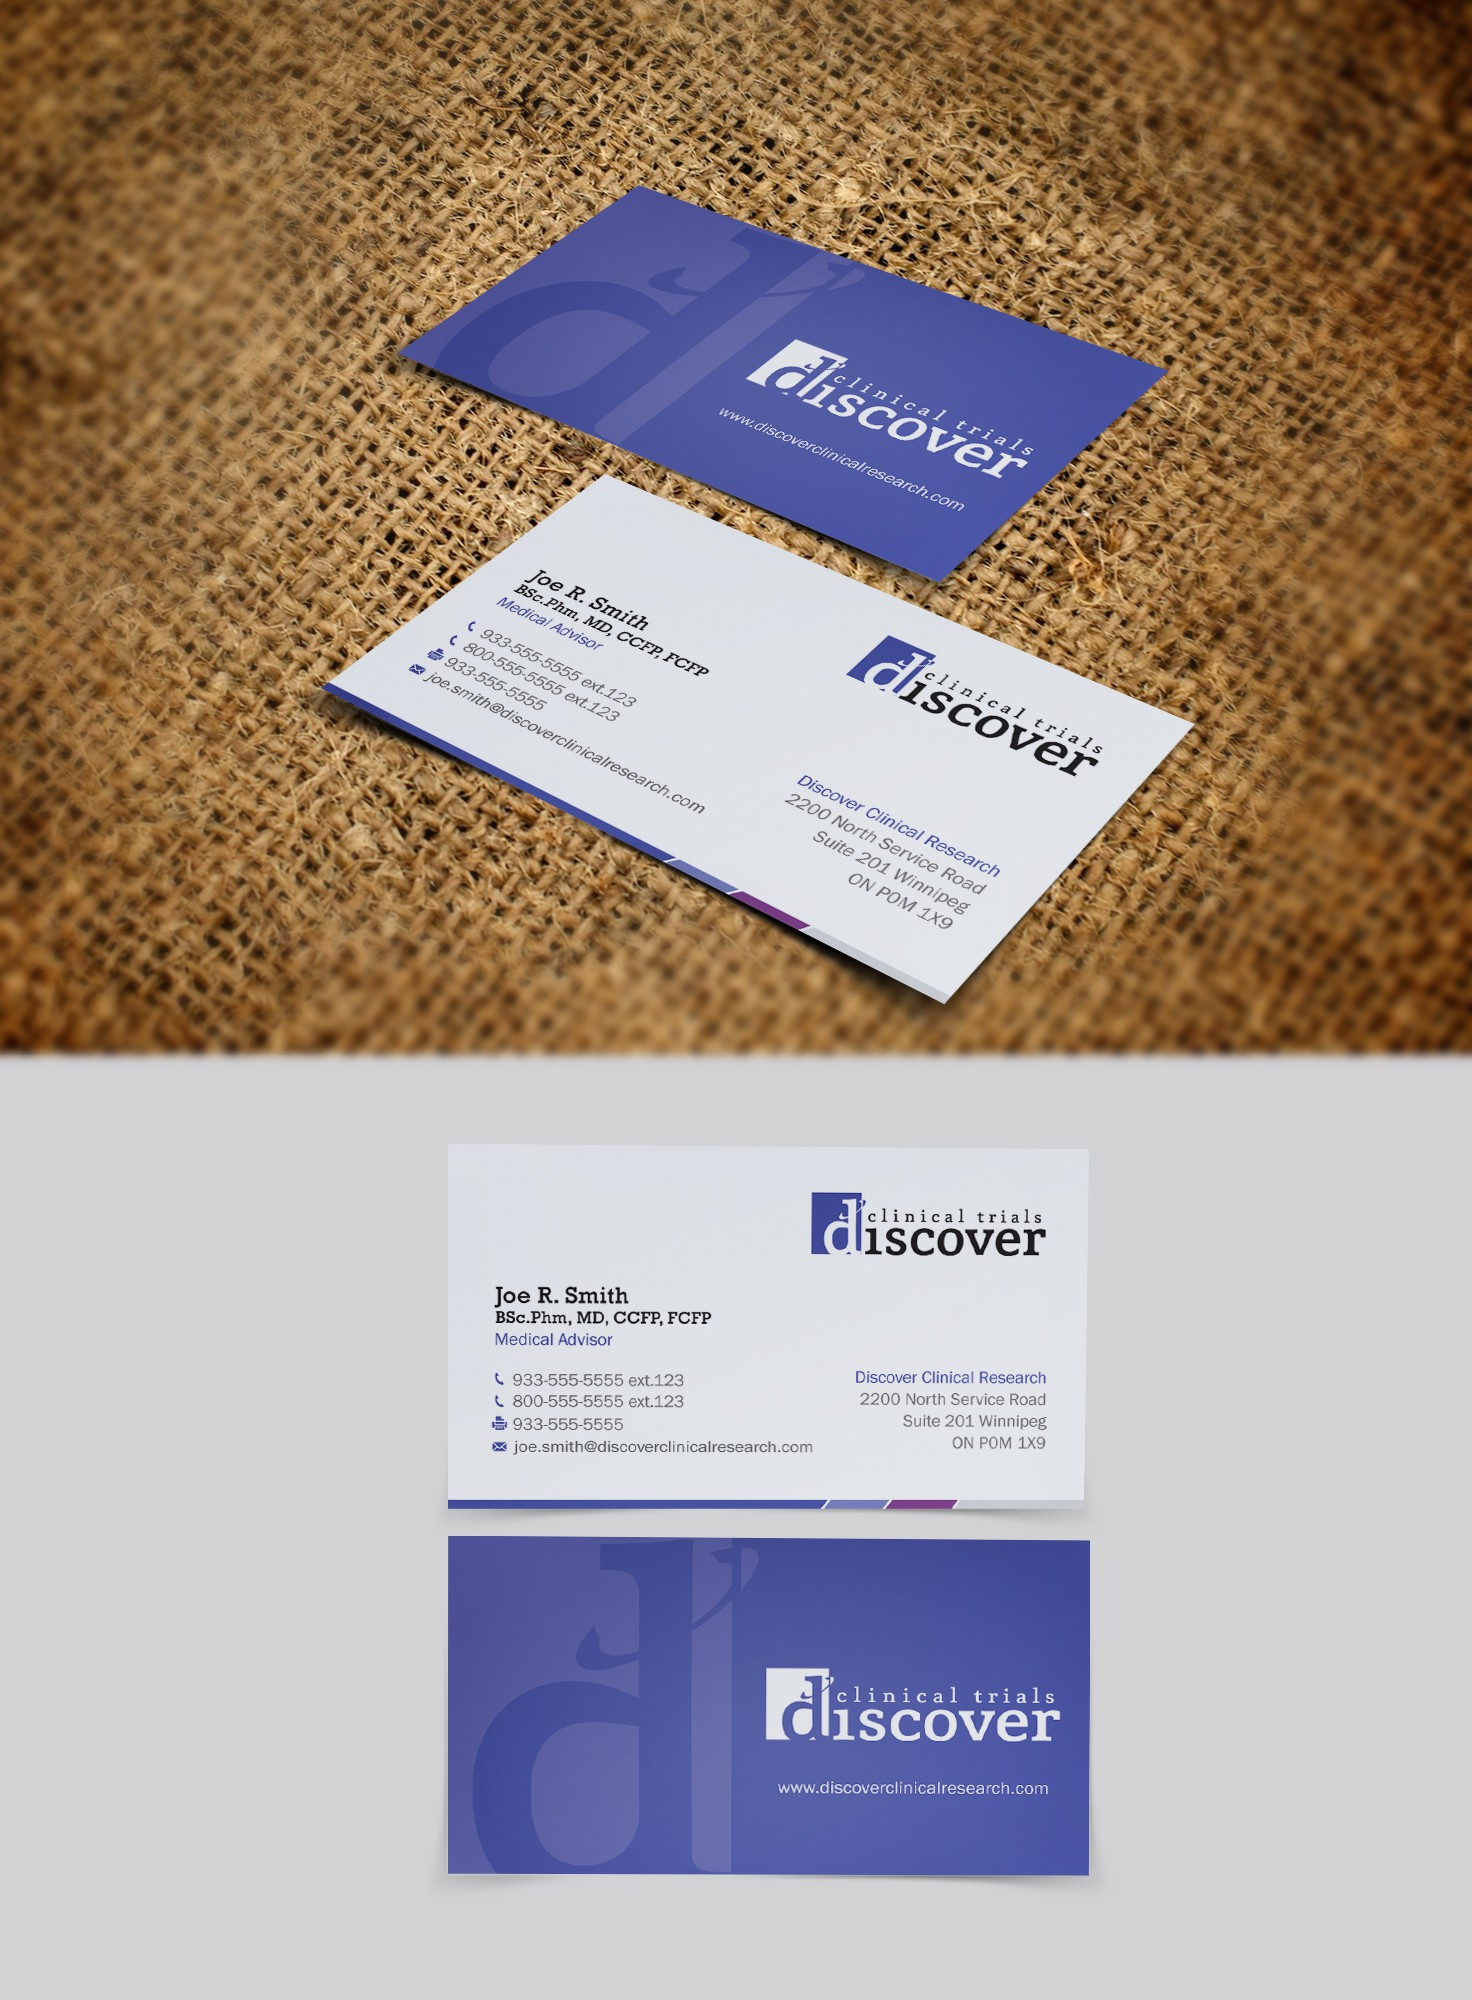 [closed to new designers] Business cards for pharmaceutical marketing company